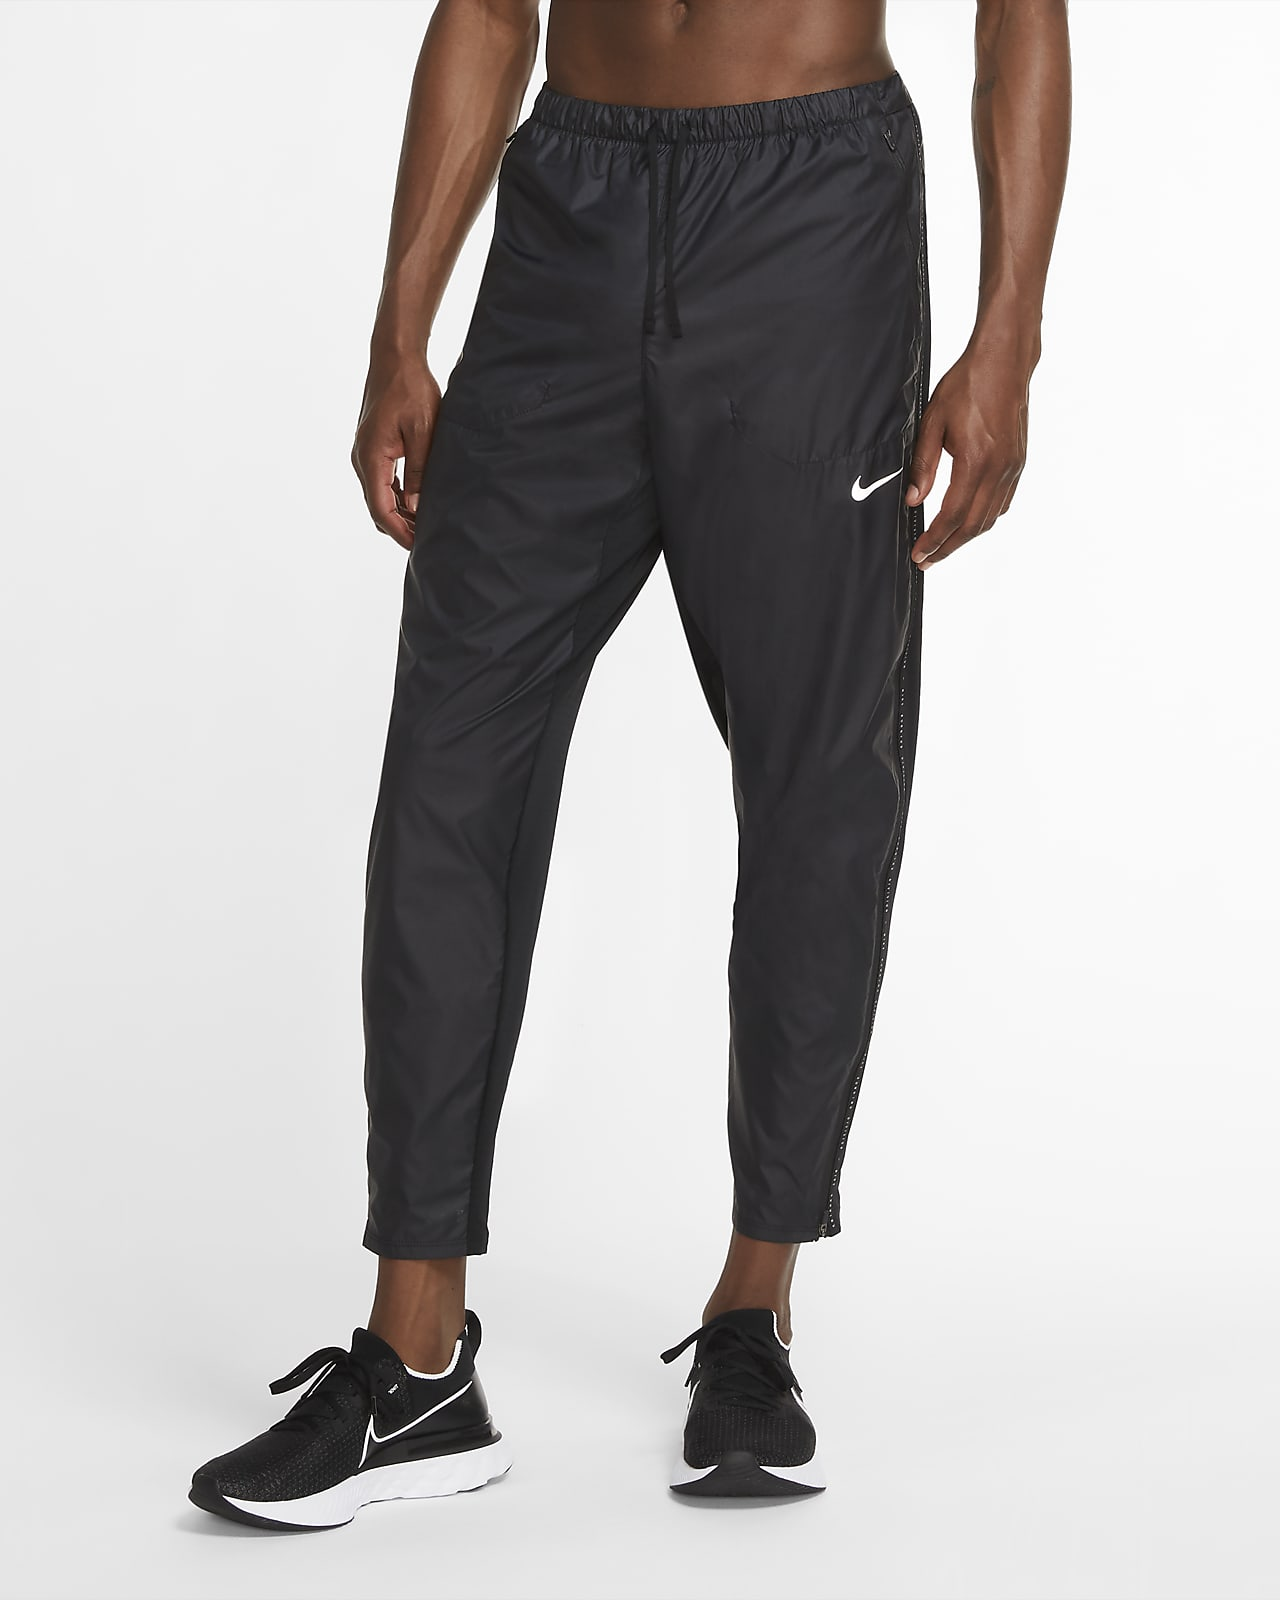 Nike Phenom Elite Shield Run Division Men's Running Pants